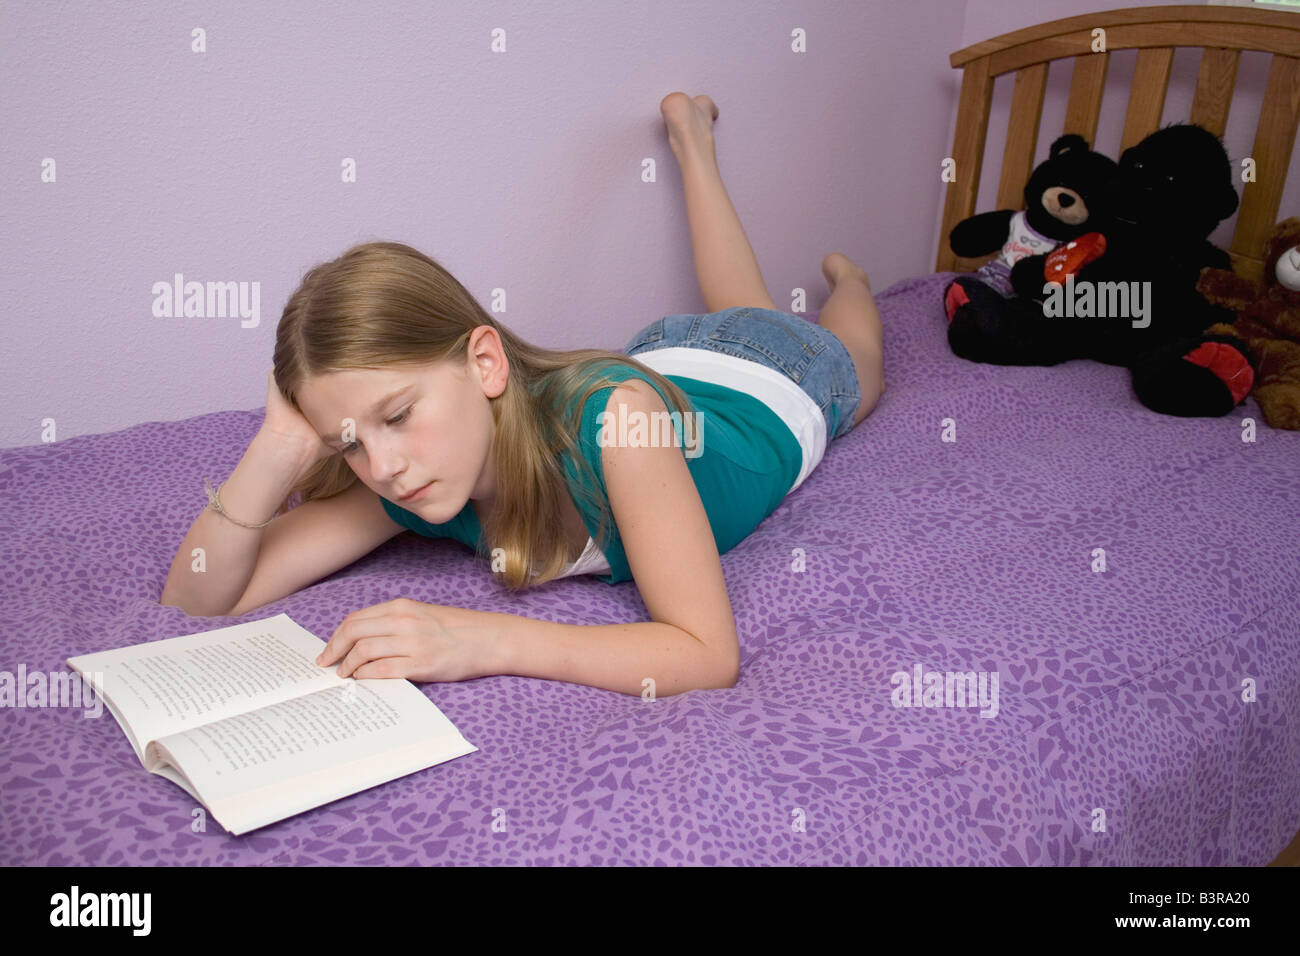 Young Girl Lying On Bed On Her Stomach Reading A Book